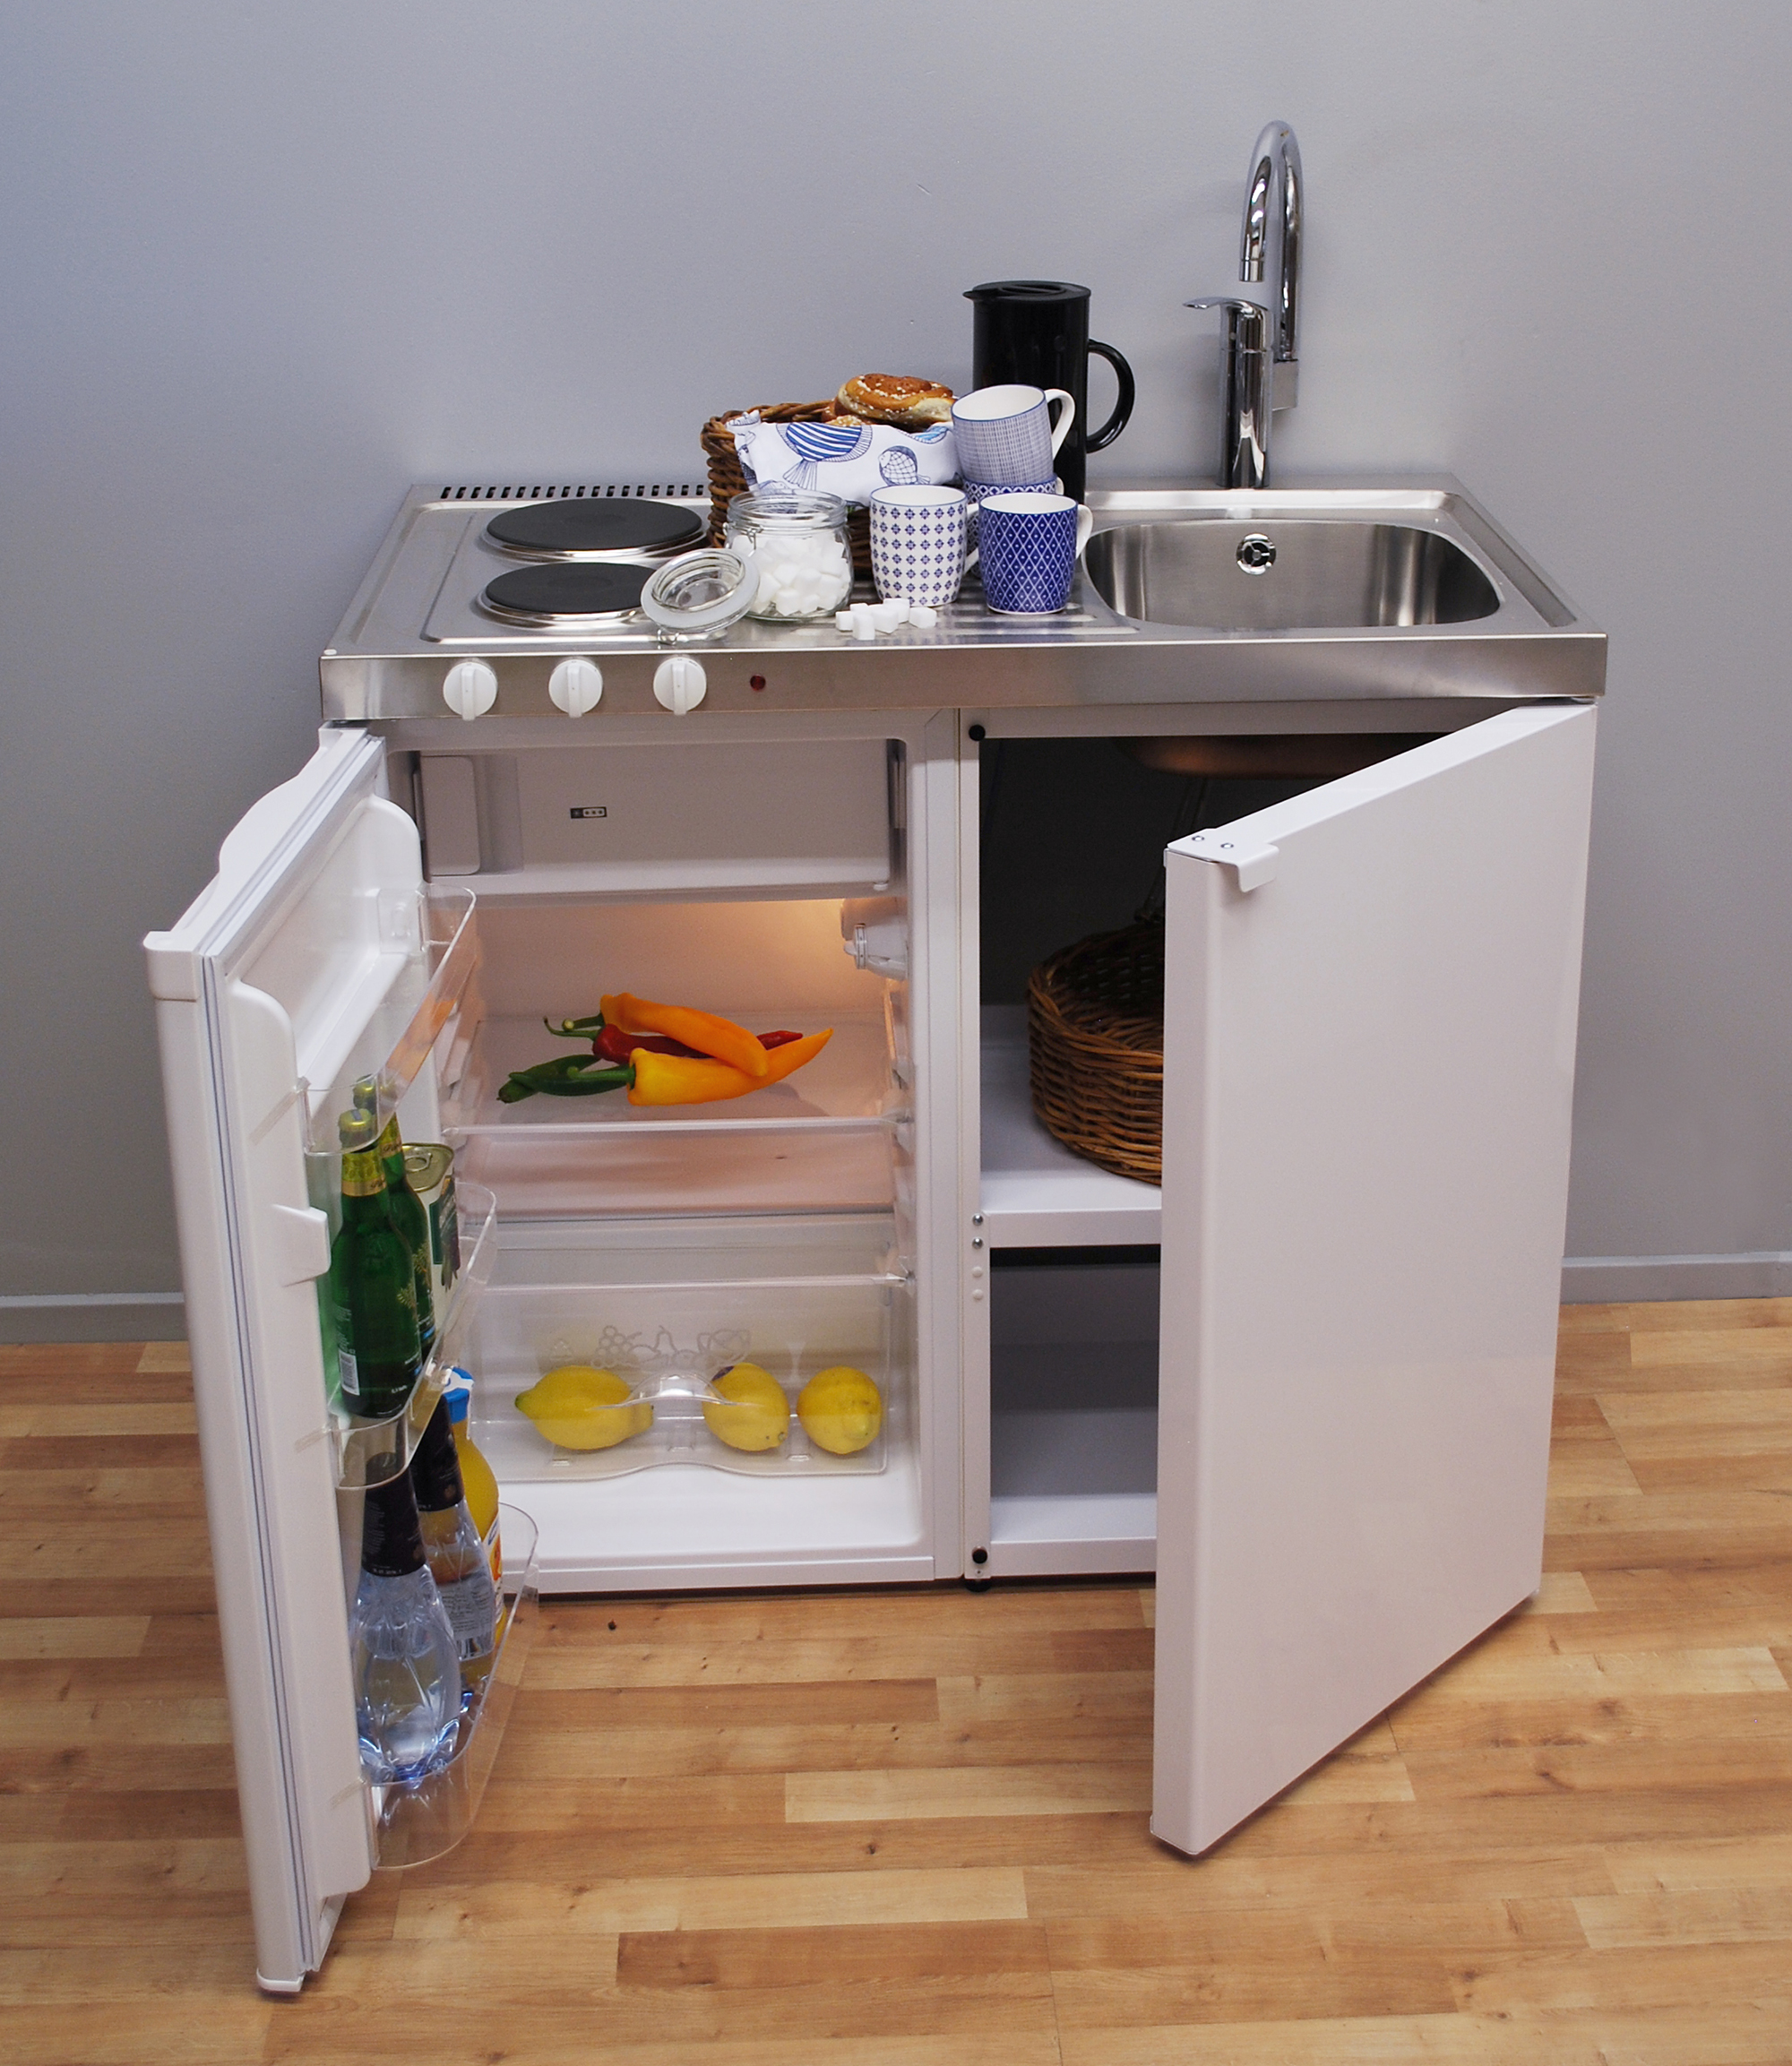 Mini Kitchen Room Box: Our Standard Mini Kitchen